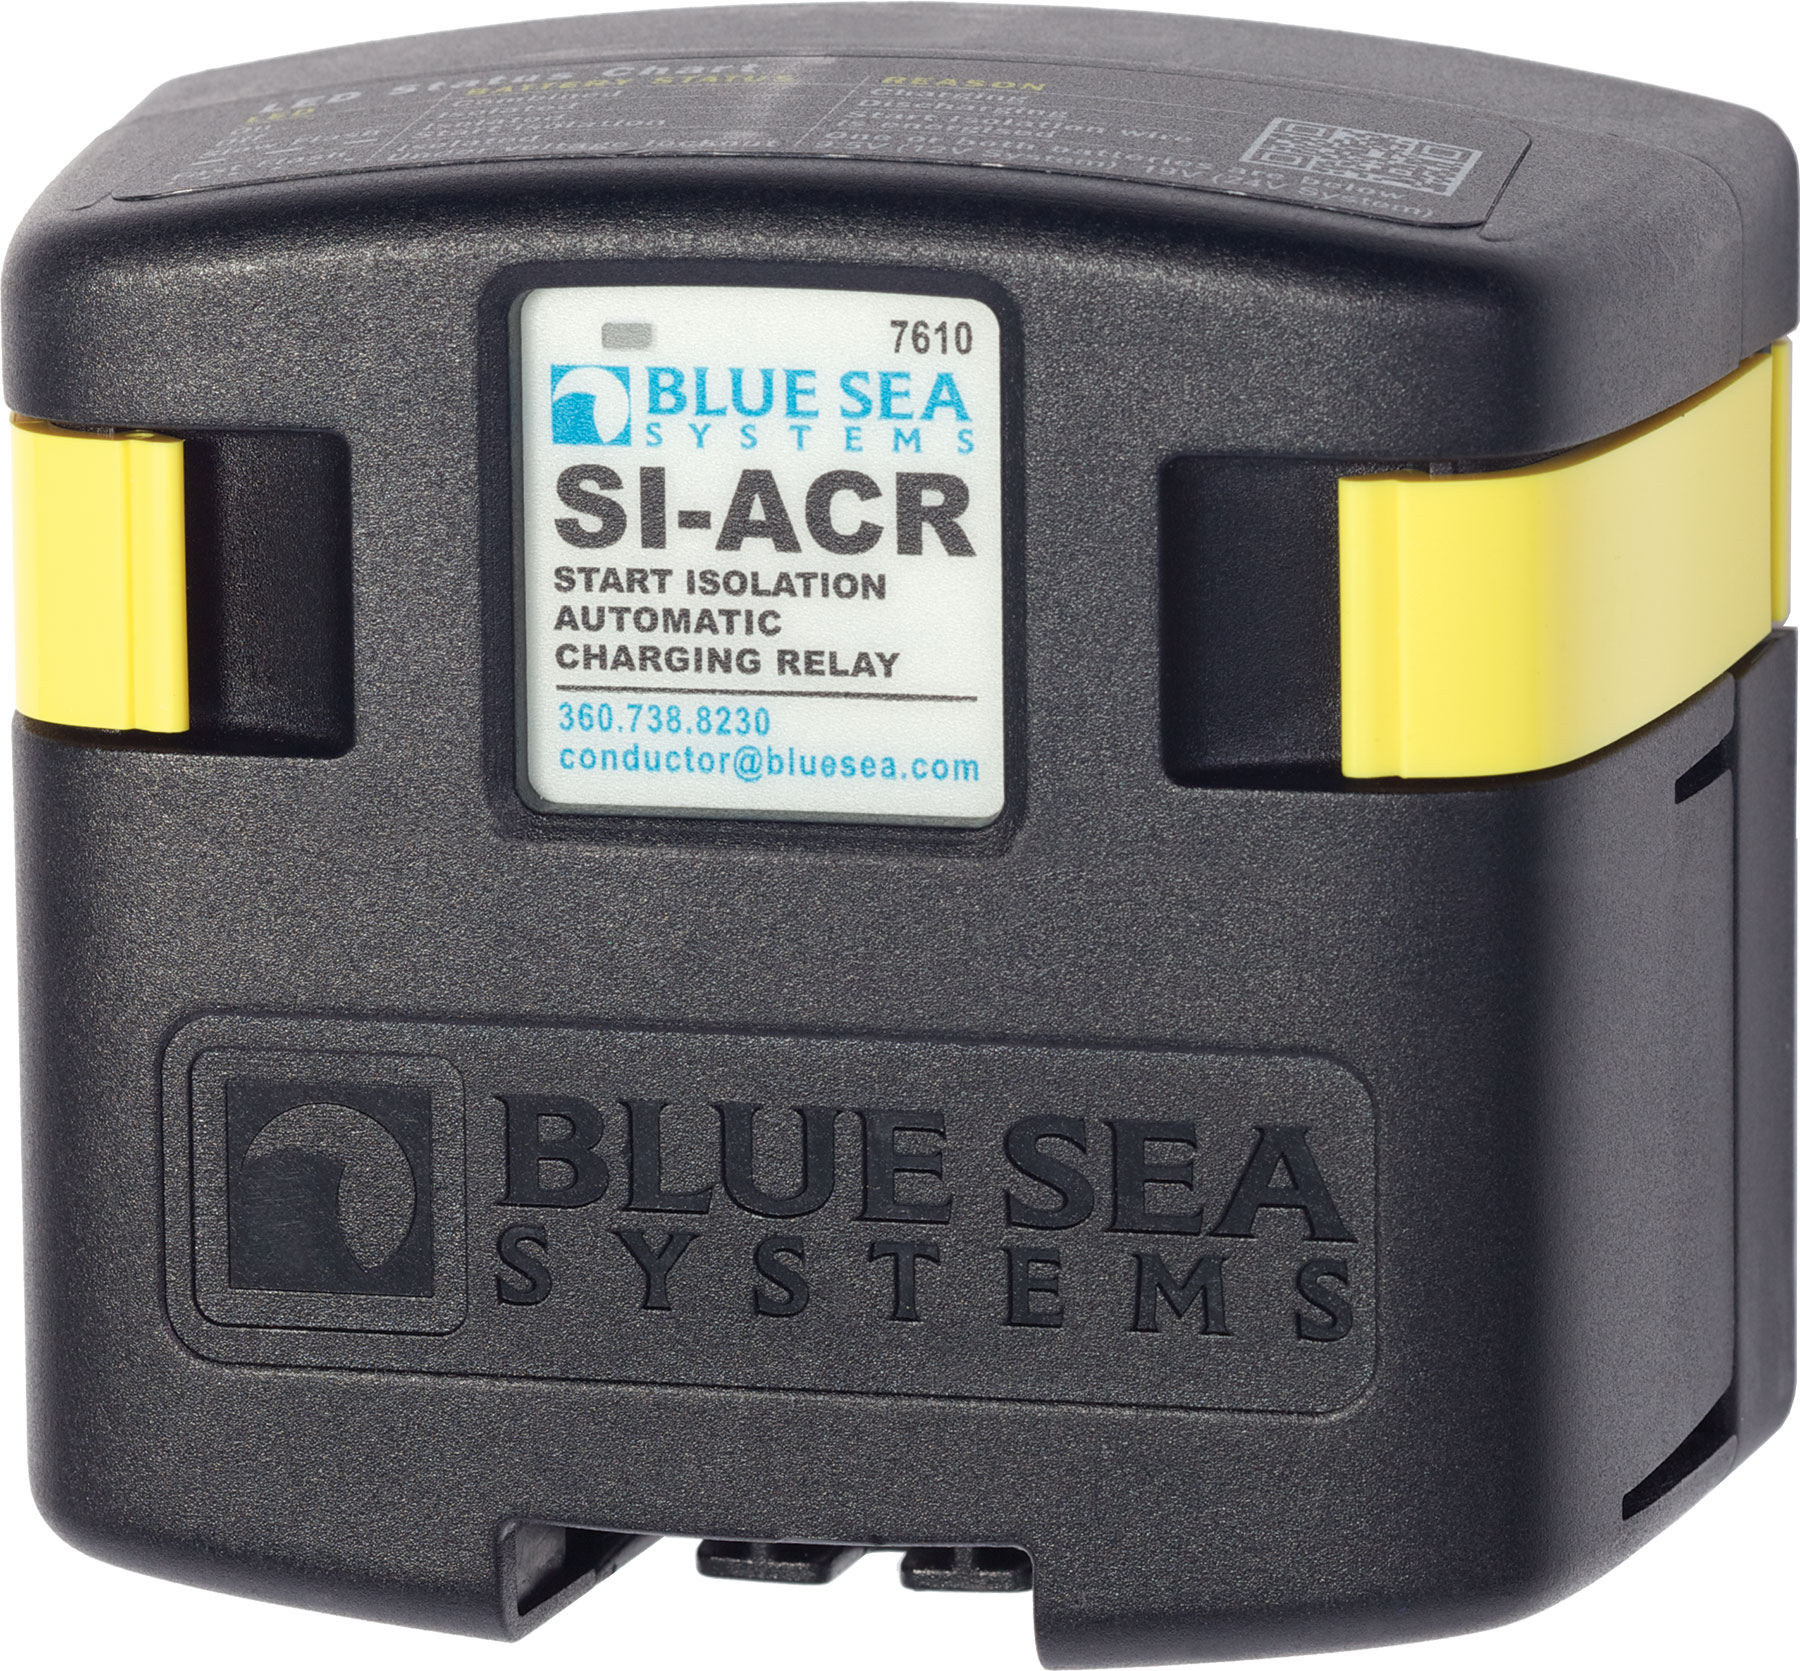 7610 si acr automatic charging relay 12 24v dc 120a blue sea systems blue sea 7610 wiring diagram at couponss.co